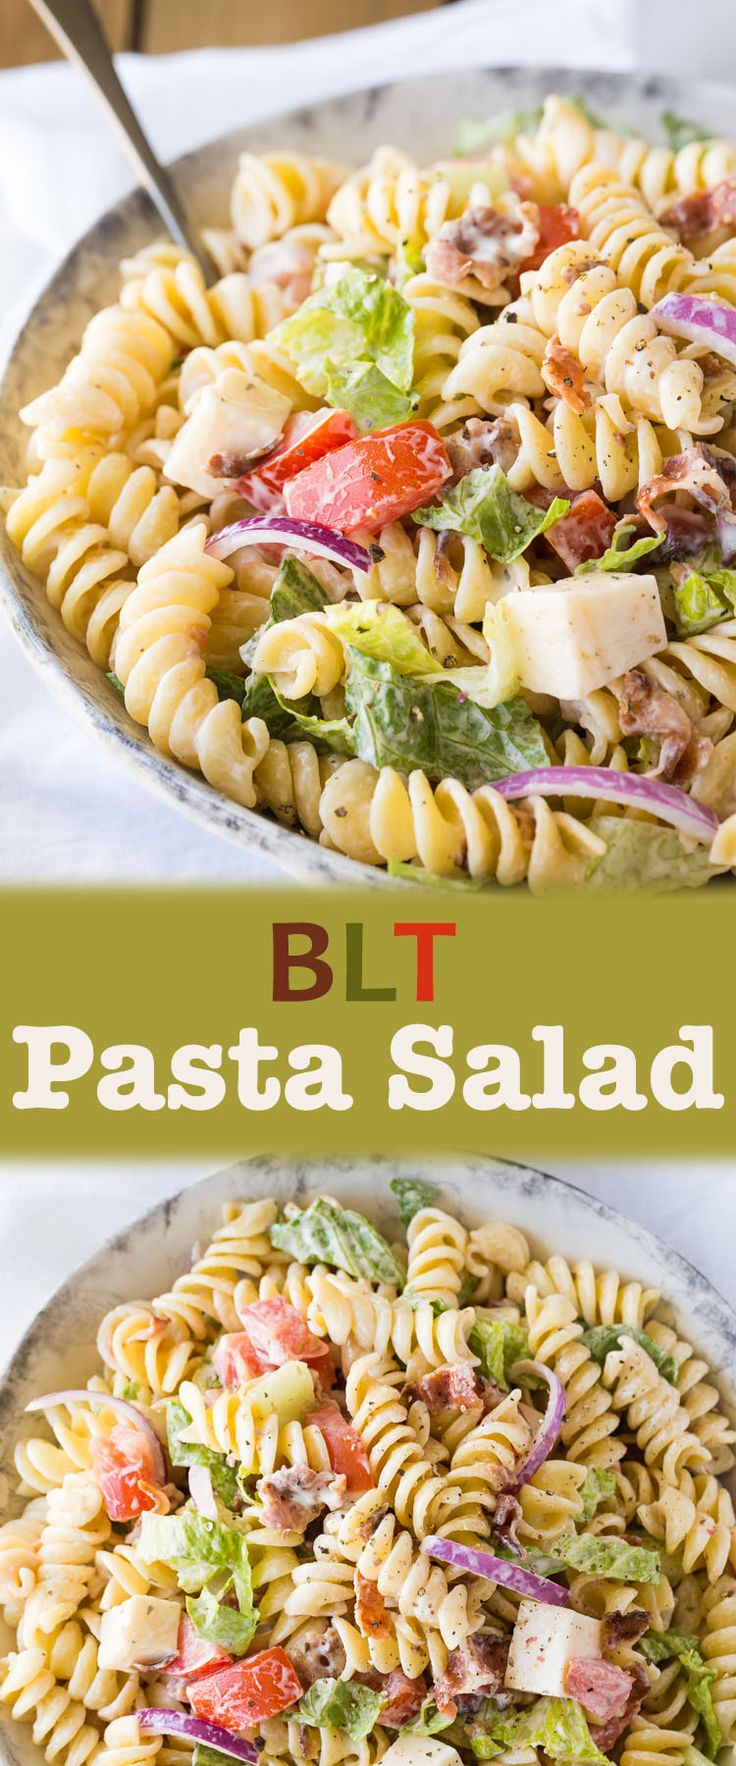 Bring on the Summer BBQ's and serve BLT Pasta Salad! This yummy easy salad recipe is full of bacon, tomato, lettuce, pasta and more - one of my favourites!